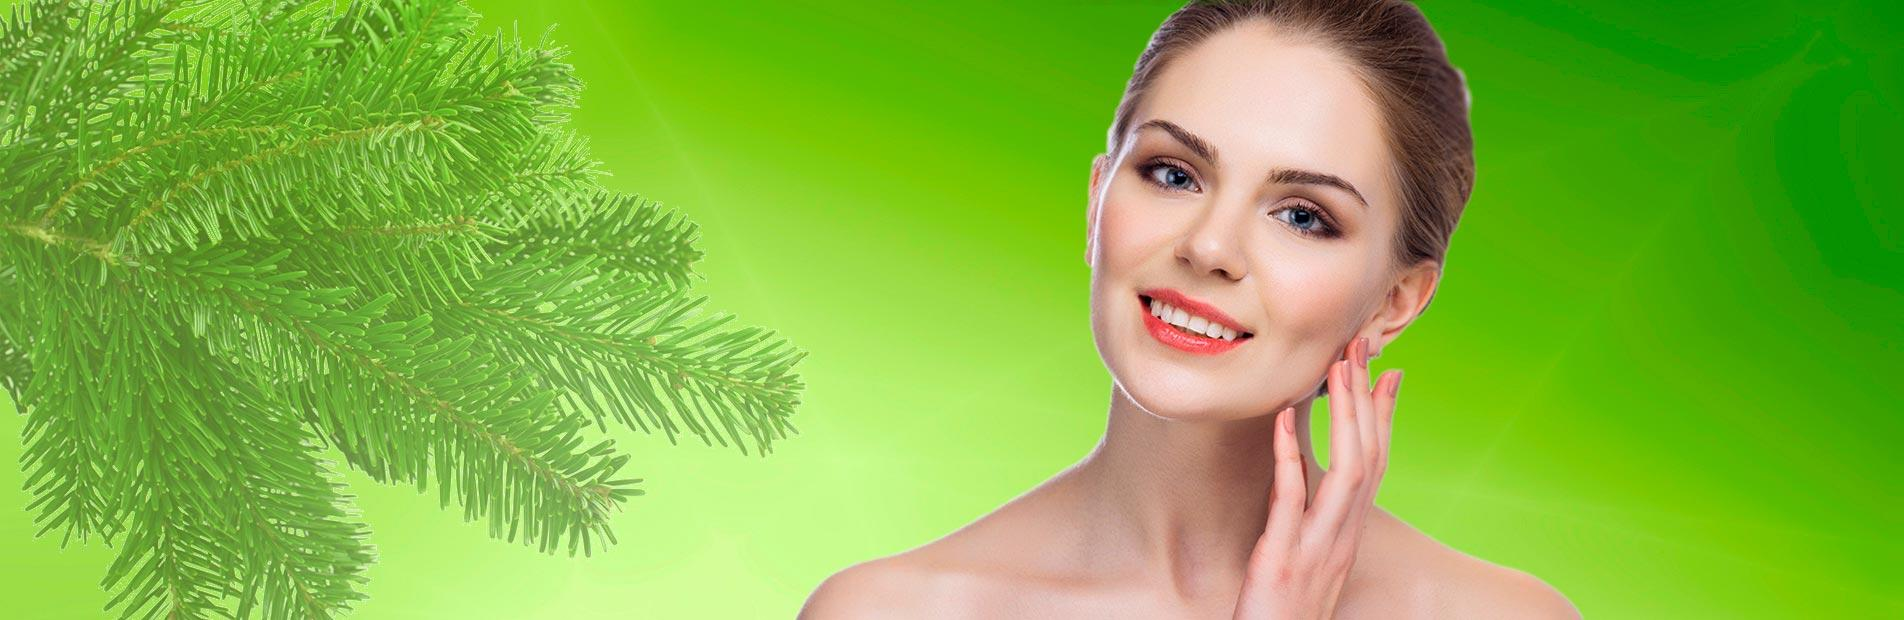 Evergreen Cottage Spa And Hair Salon